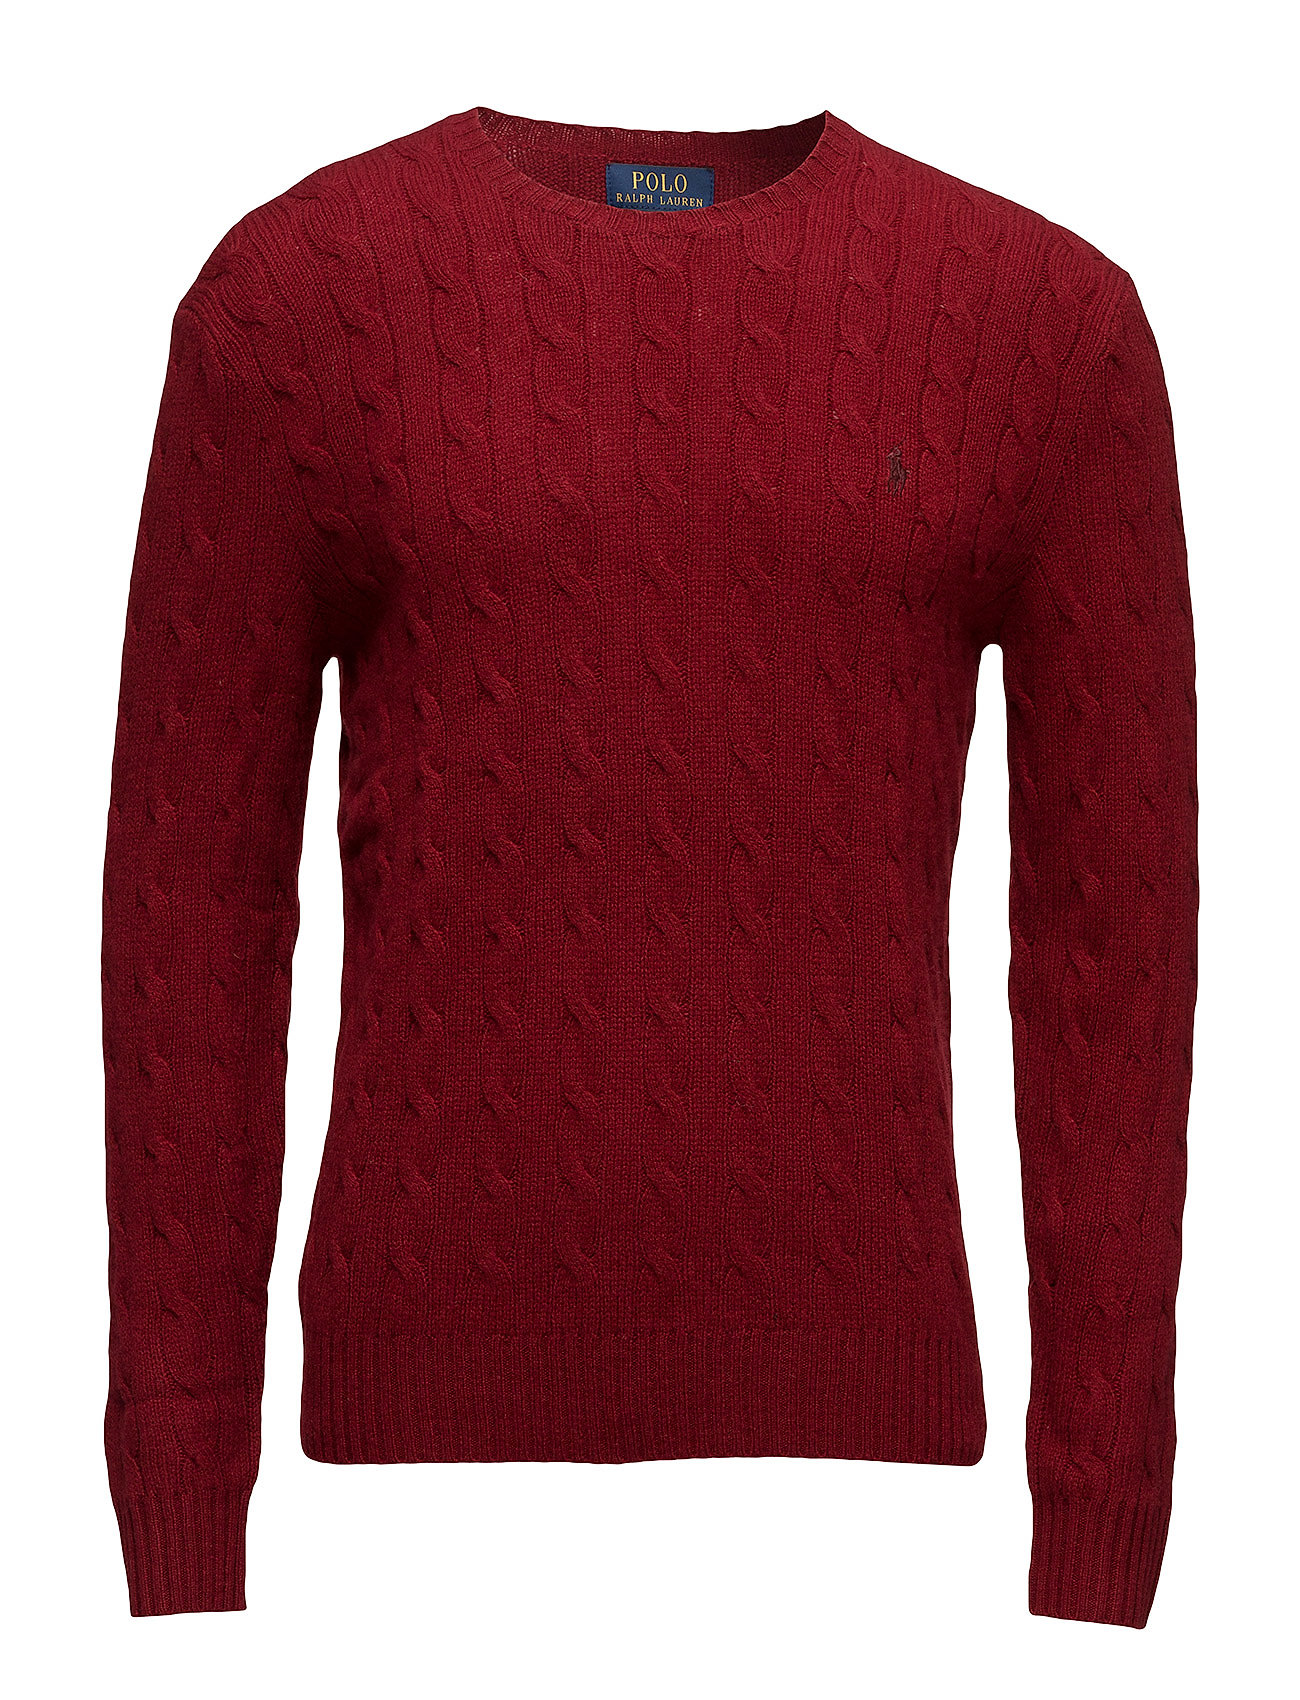 Wool-cashmere Cable-knit Sweater (Holiday Red) (£115.50) - Polo ...